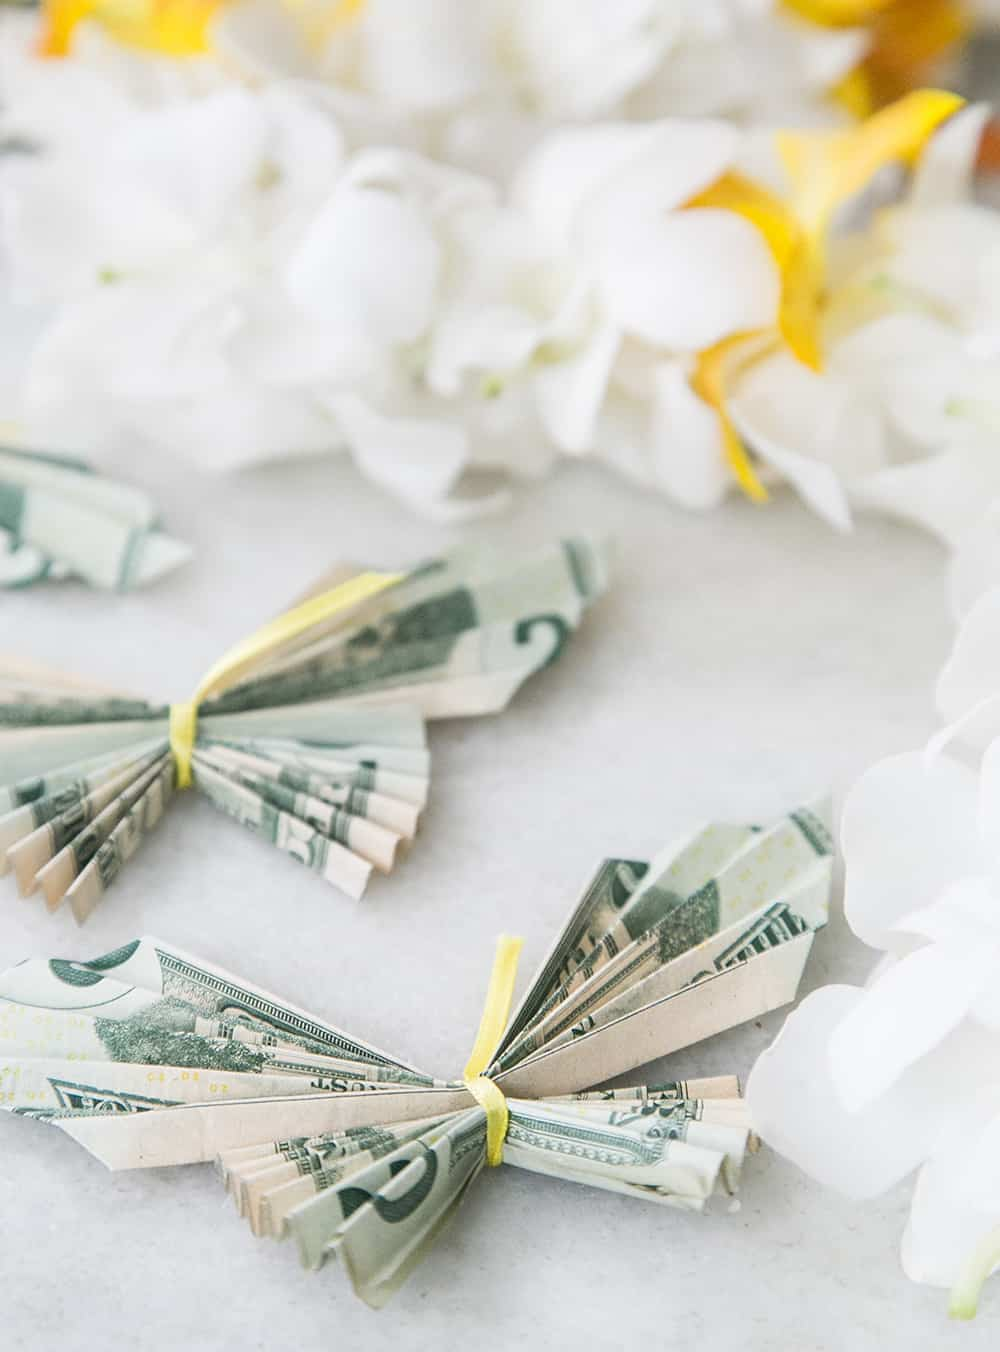 Money Origami Butterfly Lei For Graduation Sugar And Charm Sugar